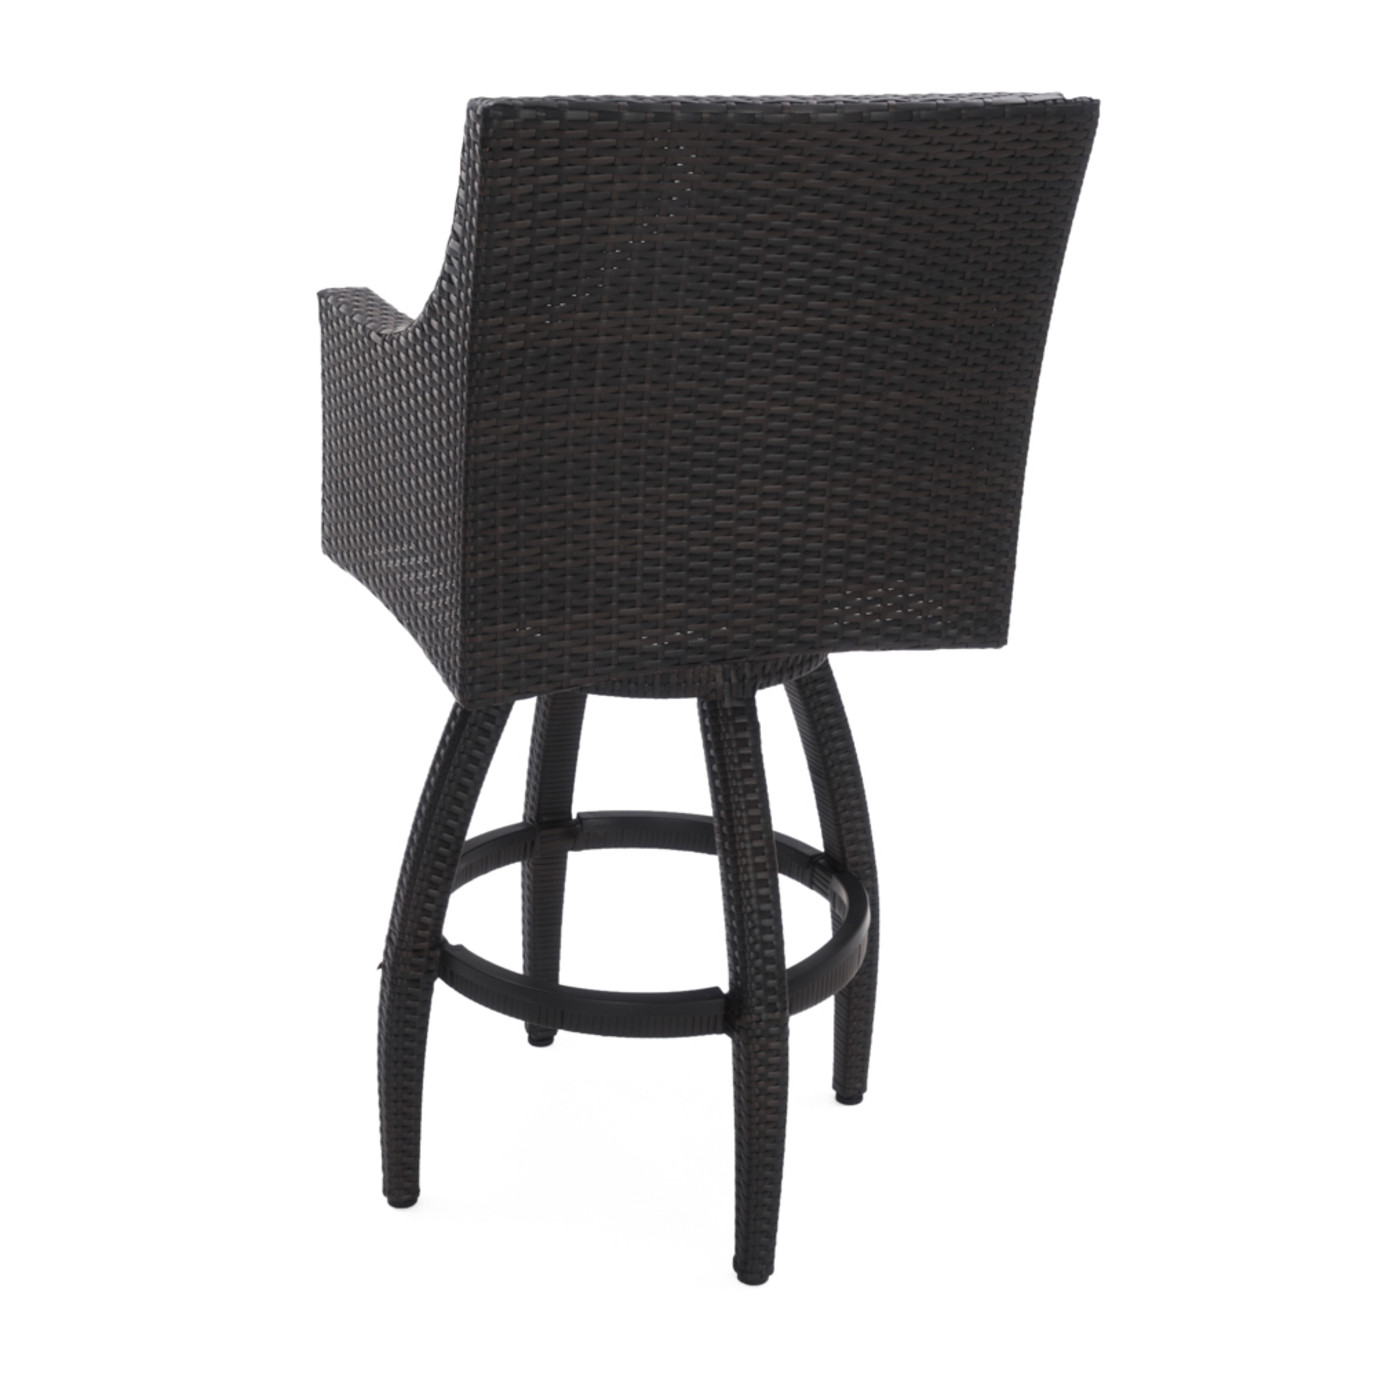 Deco™ 5pc Barstool Set - Charcoal Gray